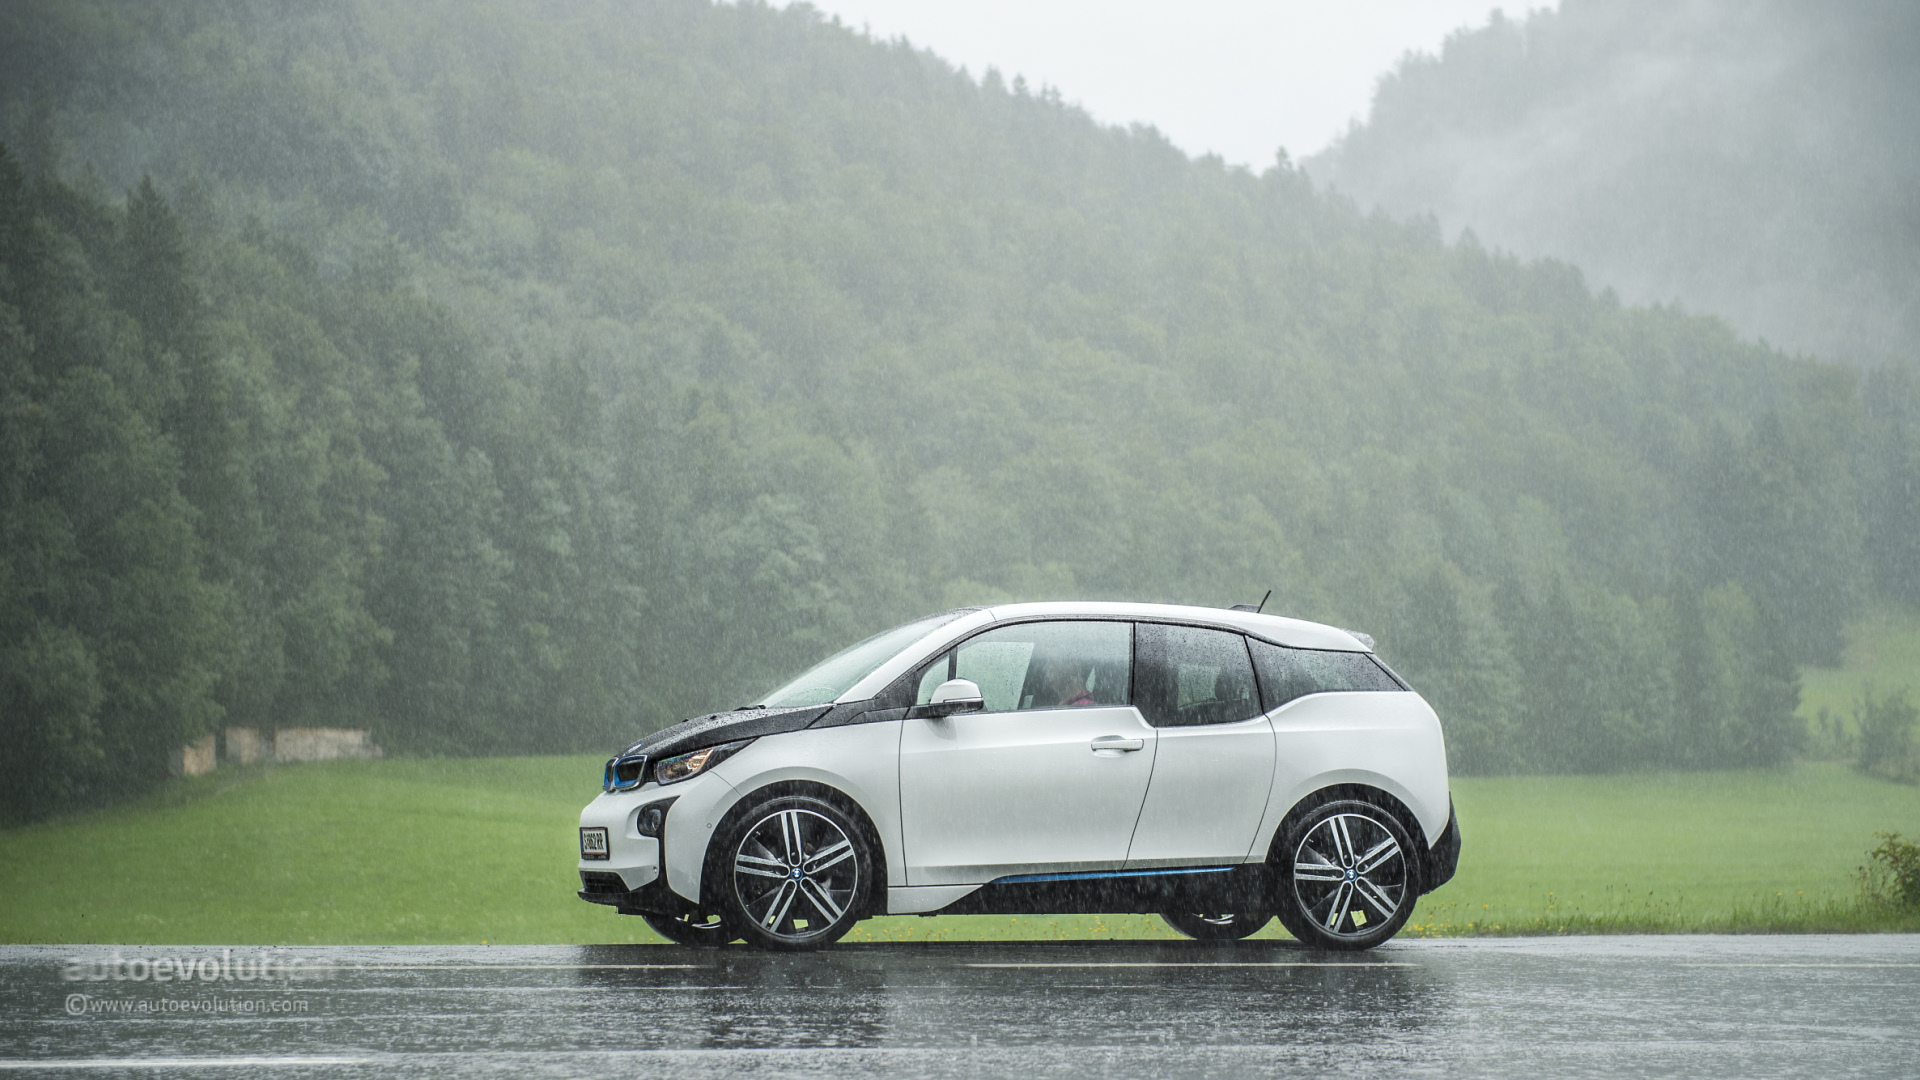 Hd Auto Sales >> BMW i3 Sales Far Behind Dealer Expectations in Germany - autoevolution